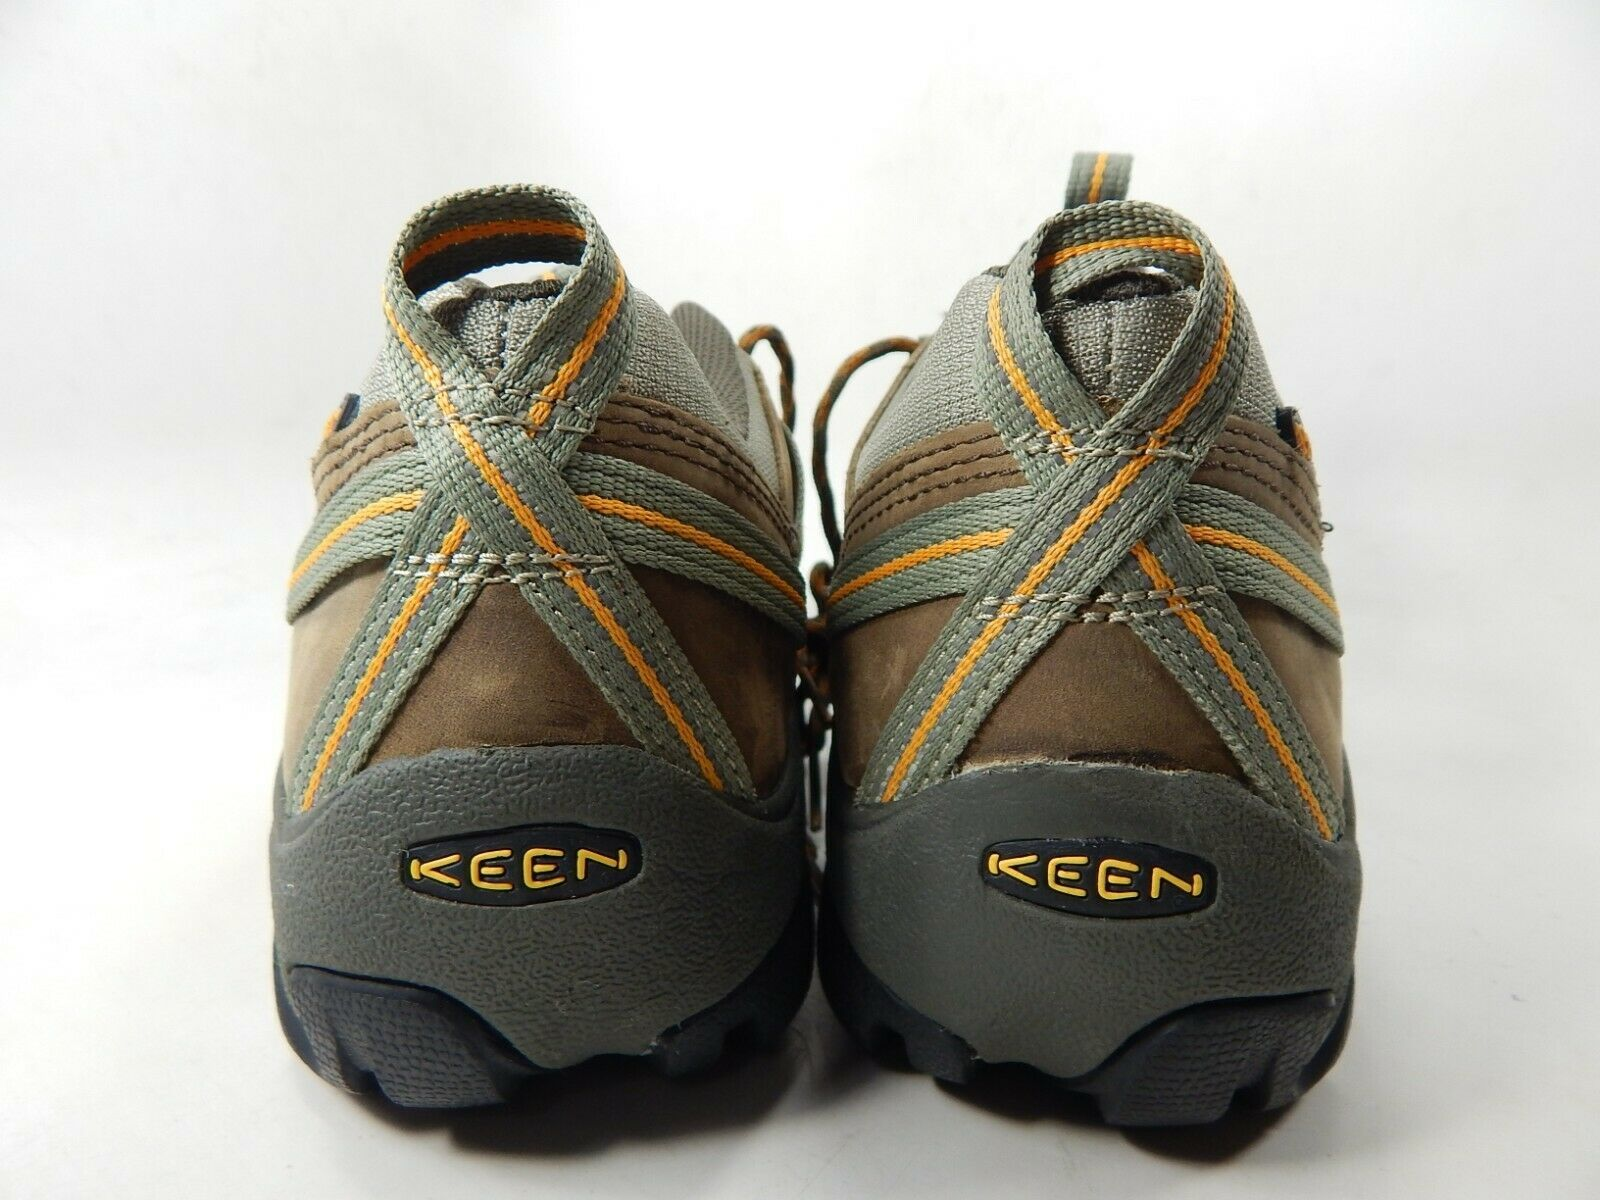 Keen Voyageur Low Top Size US 10.5 M (D) EU 44 Men's Trail Hiking Shoes Brown image 6